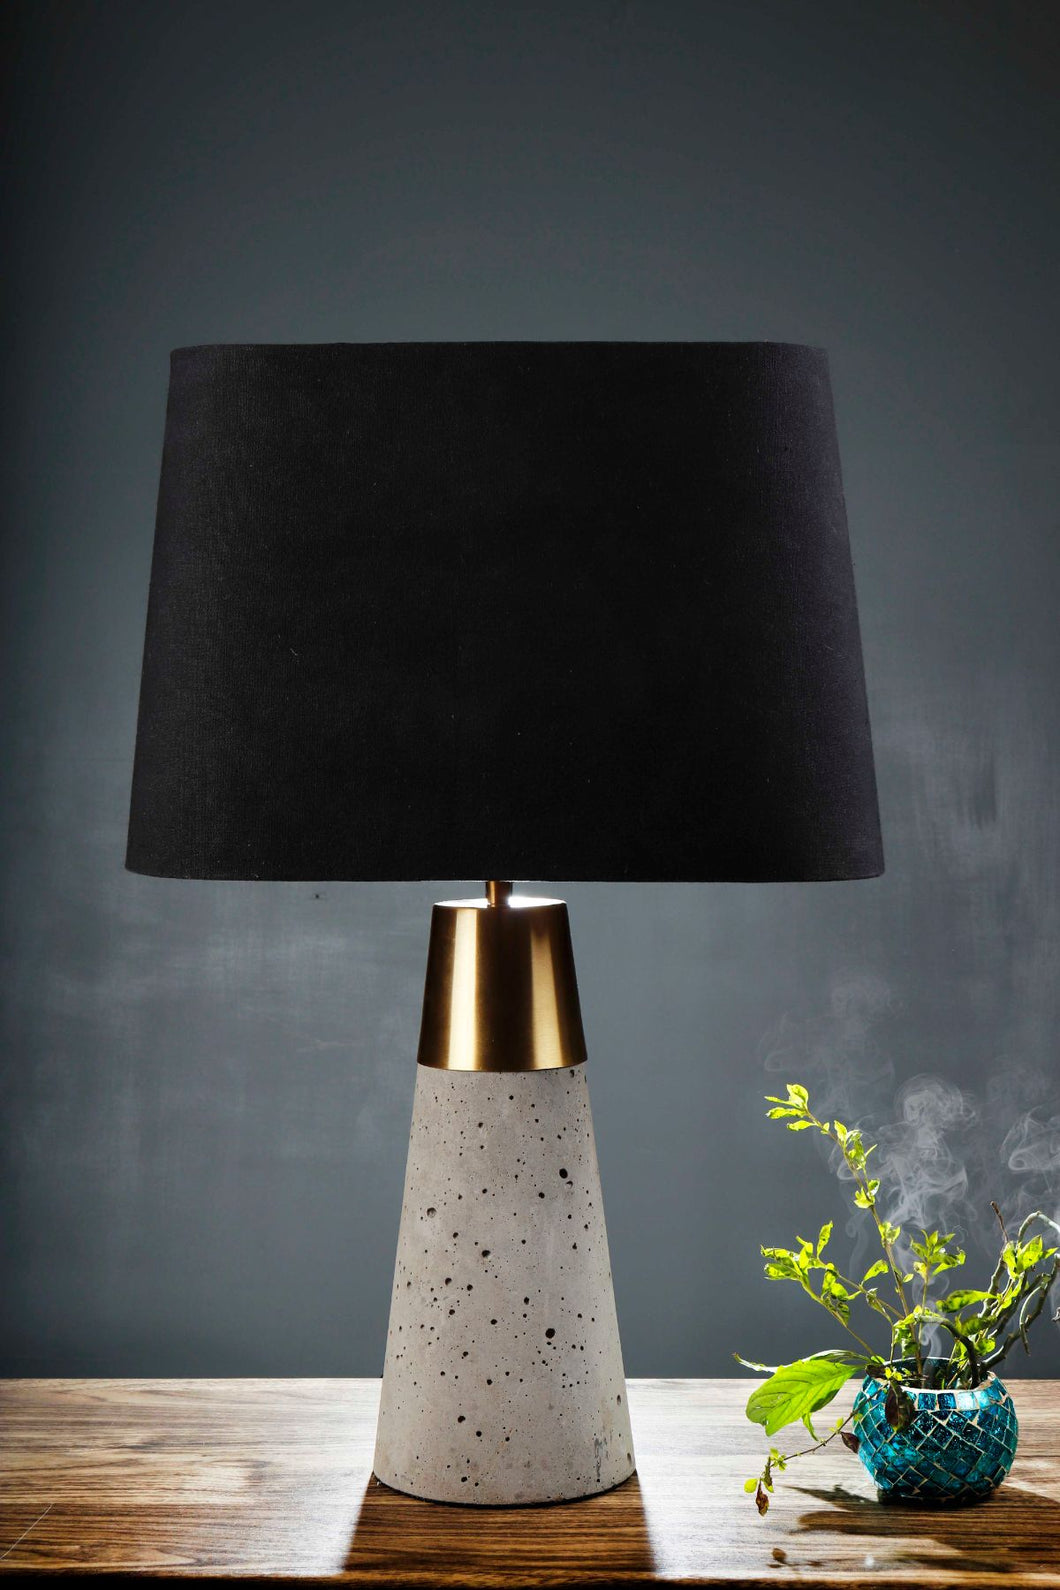 Rocky Road Table Lamp with 2 [BLACK, GREEN VELVET] Lampshade